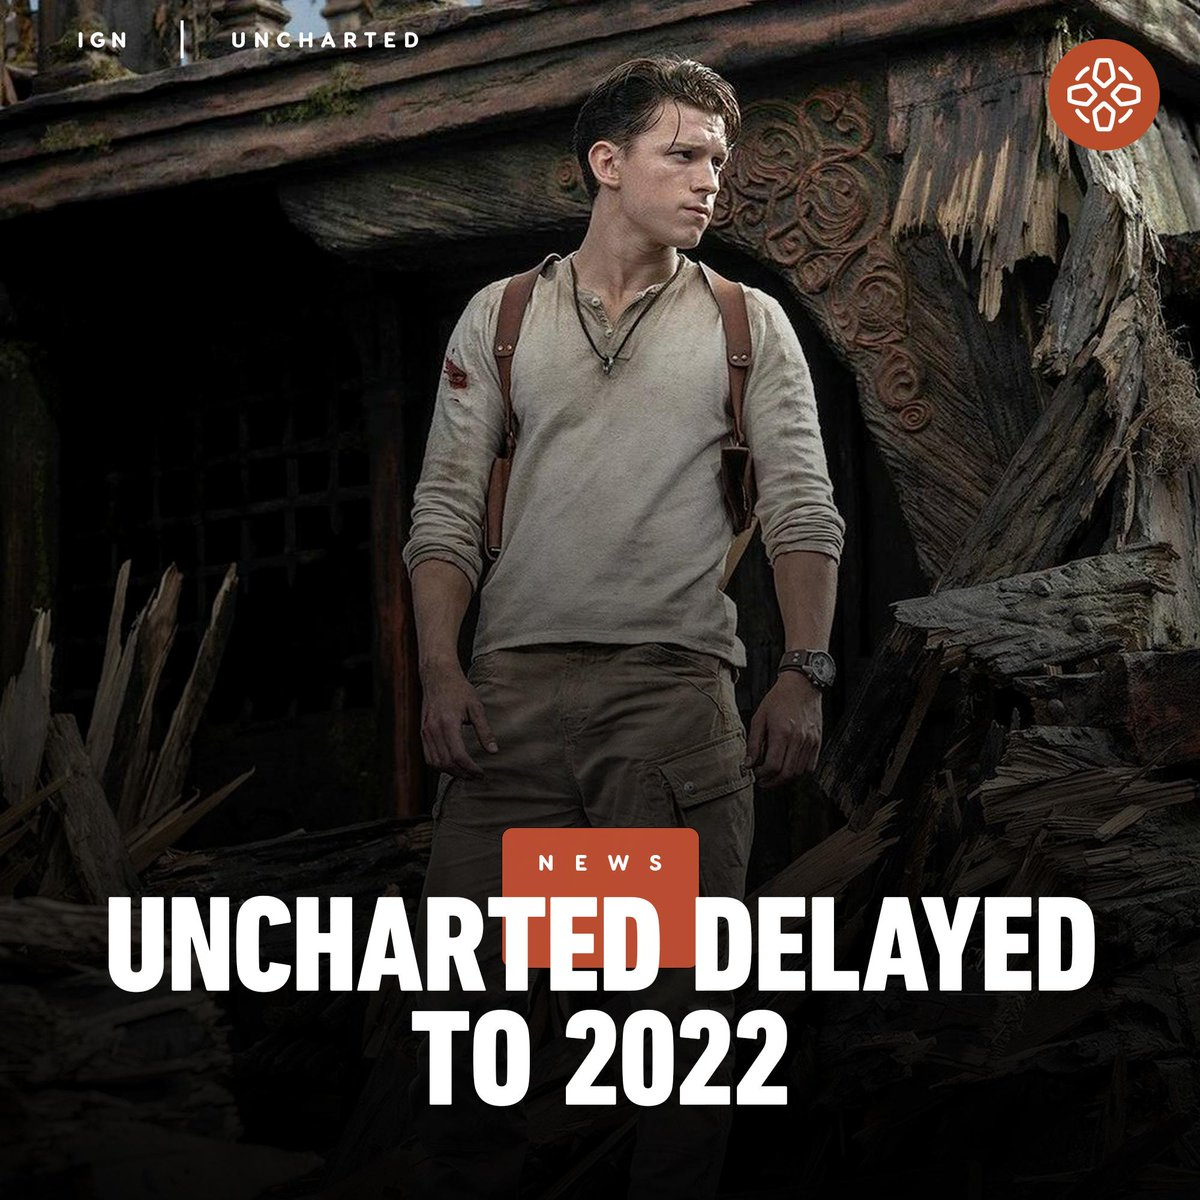 Replying to @IGN: The Uncharted movie has been pushed back from July 16, 2021 to February 11, 2022.